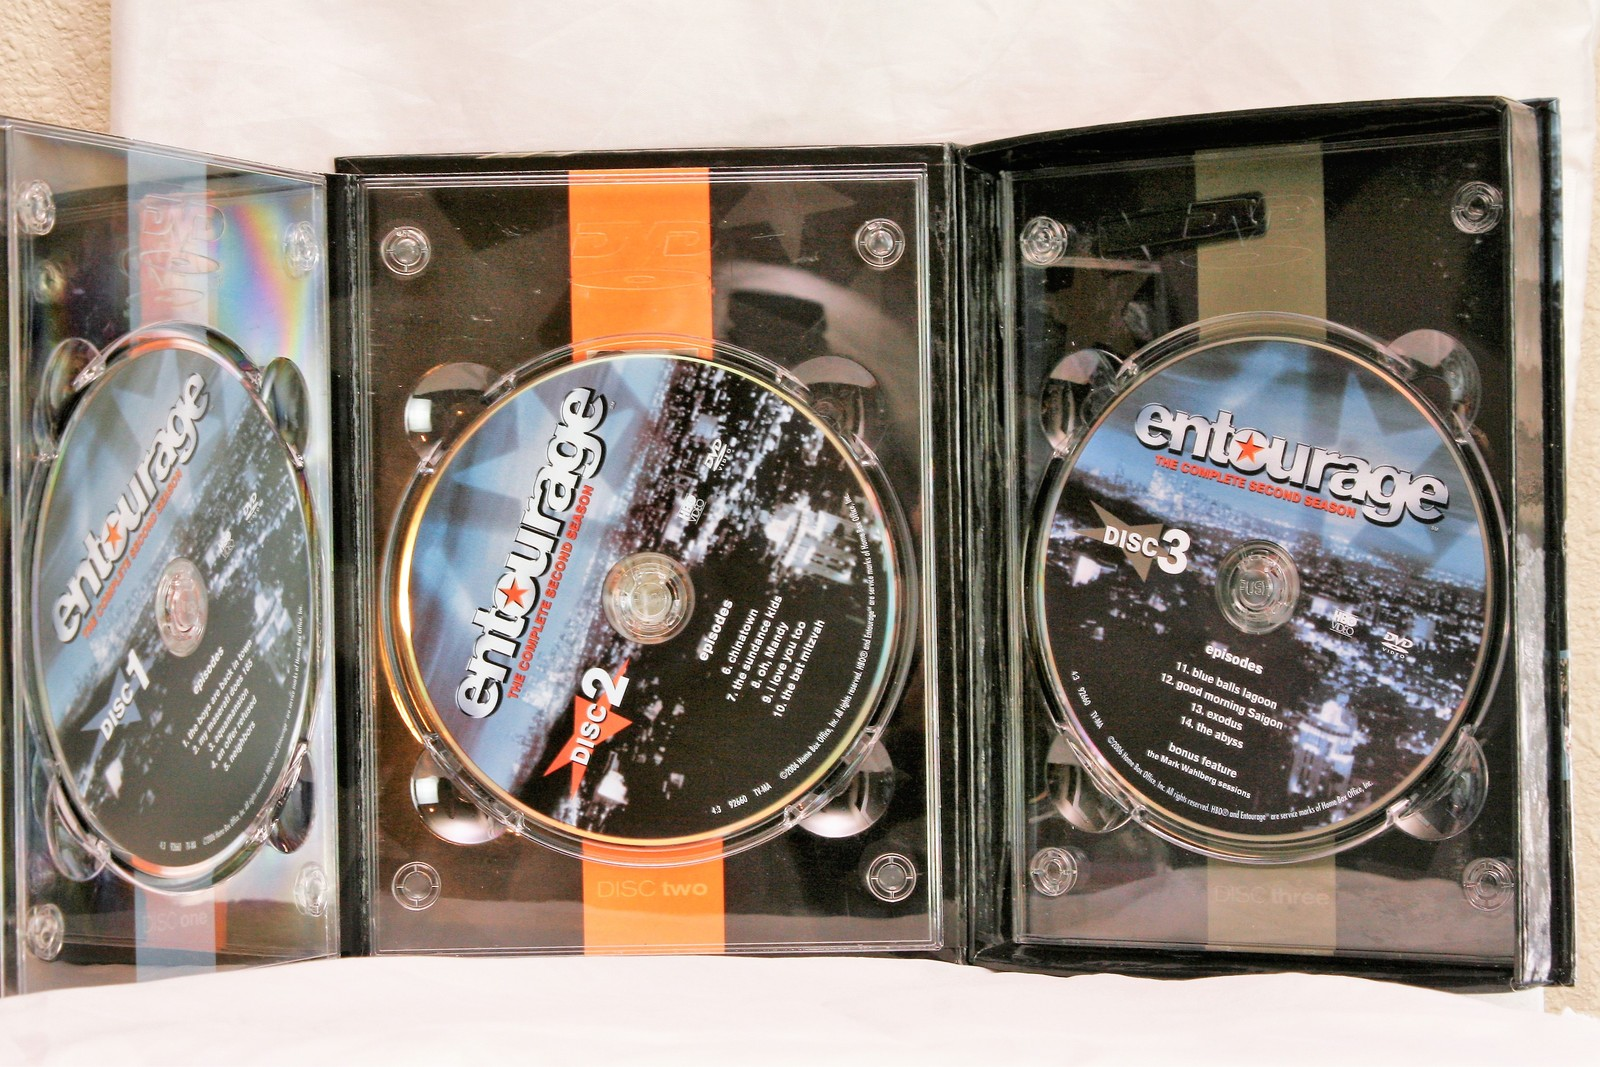 Entourage: The Complete First AND Second Season (DVD, 2005, 5-Disc Total)